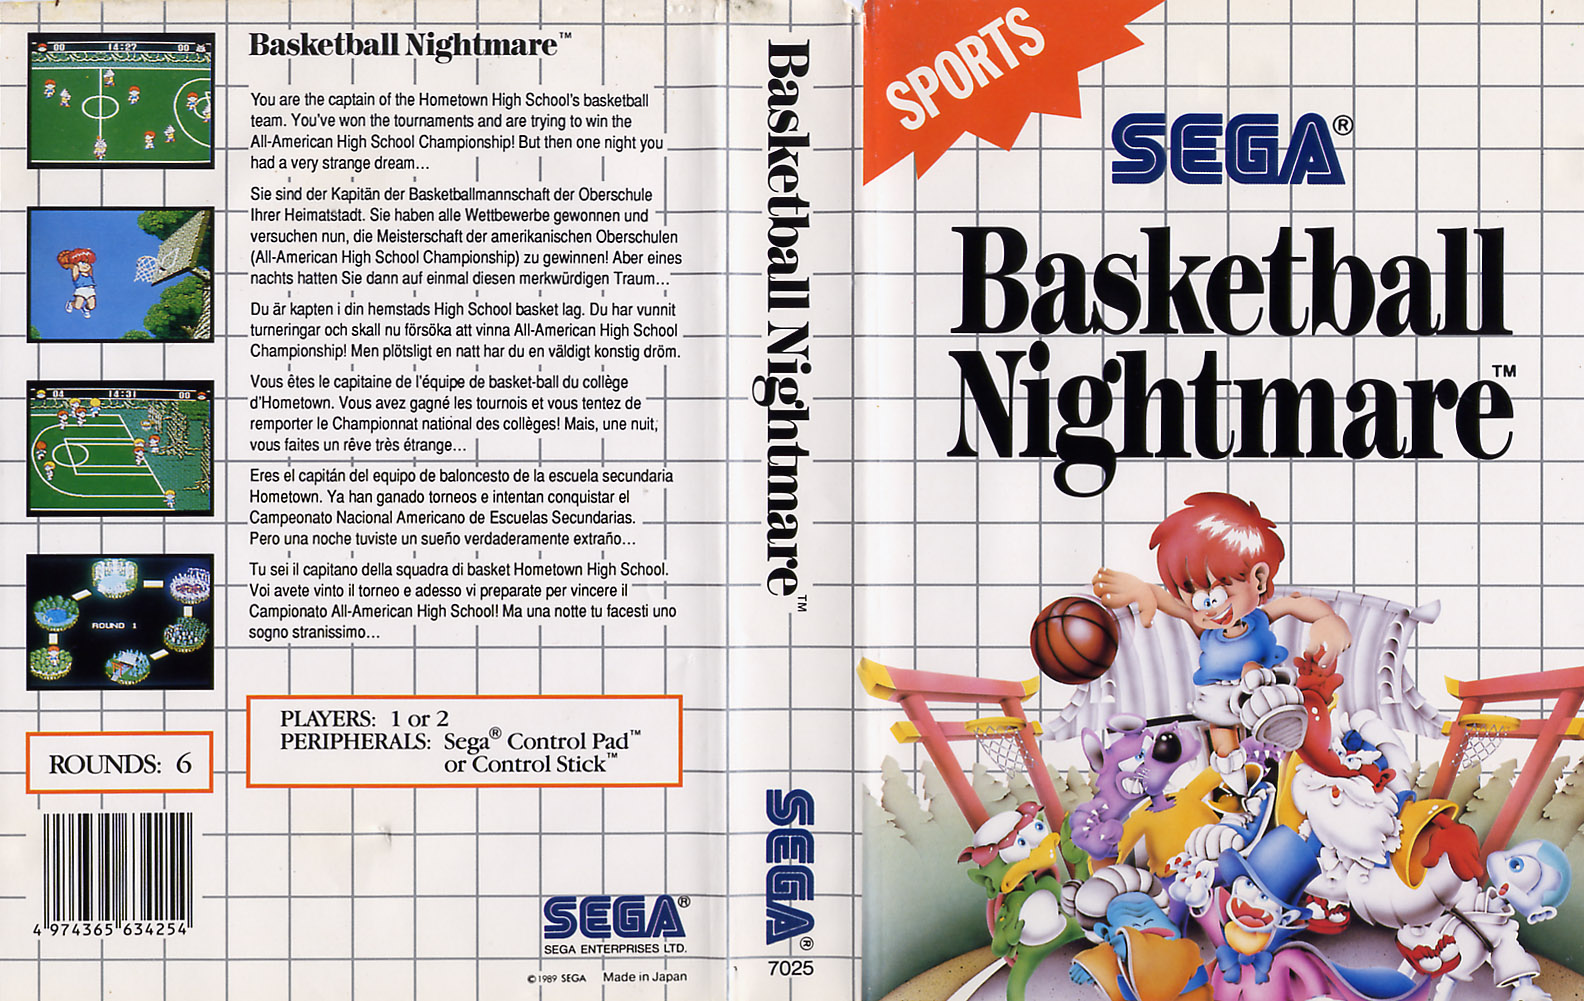 http://www.smspower.org/uploads/Scans/BasketballNightmare-SMS-EU.jpg